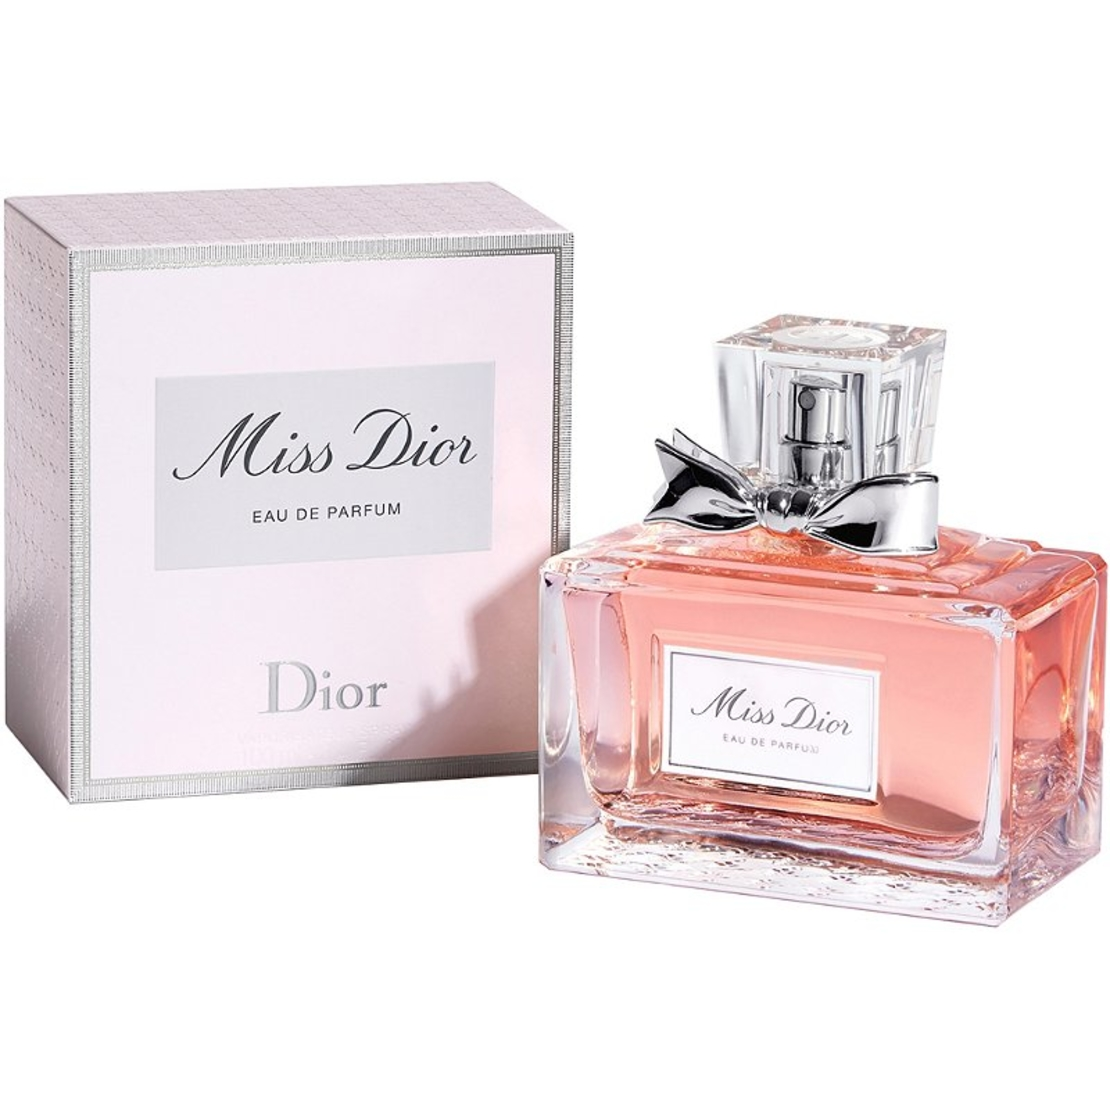 בושם לאשה דיור מיס דיור Dior Miss Dior (W) EDP 100 ML